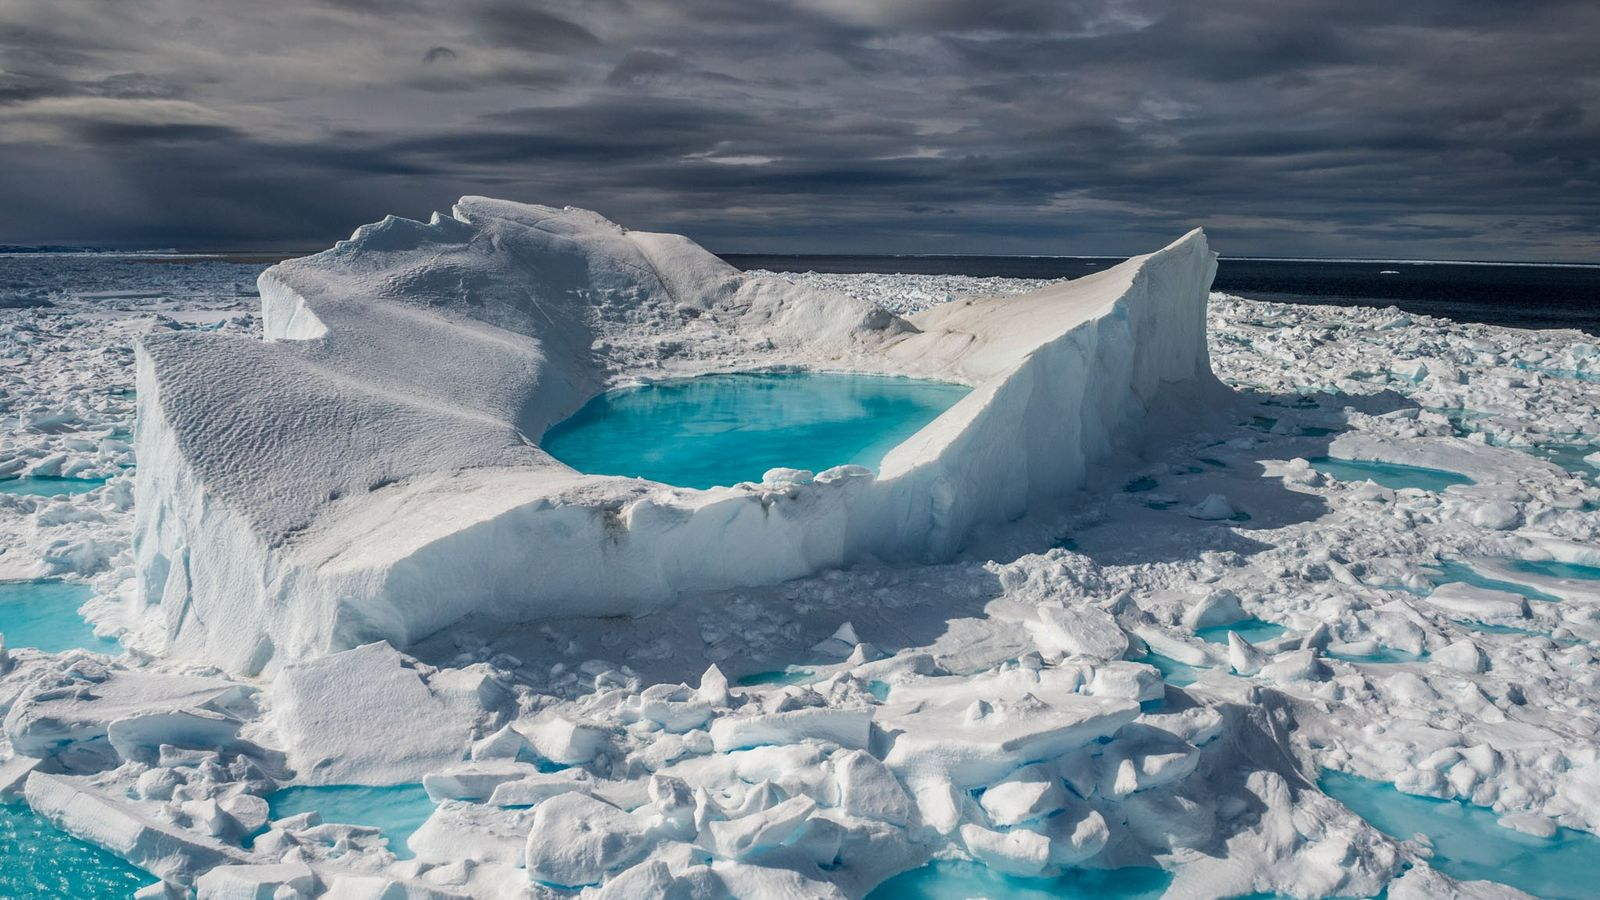 Off the north coast of Canada's Baffin Island, a June sun transforms snow and ice into ...